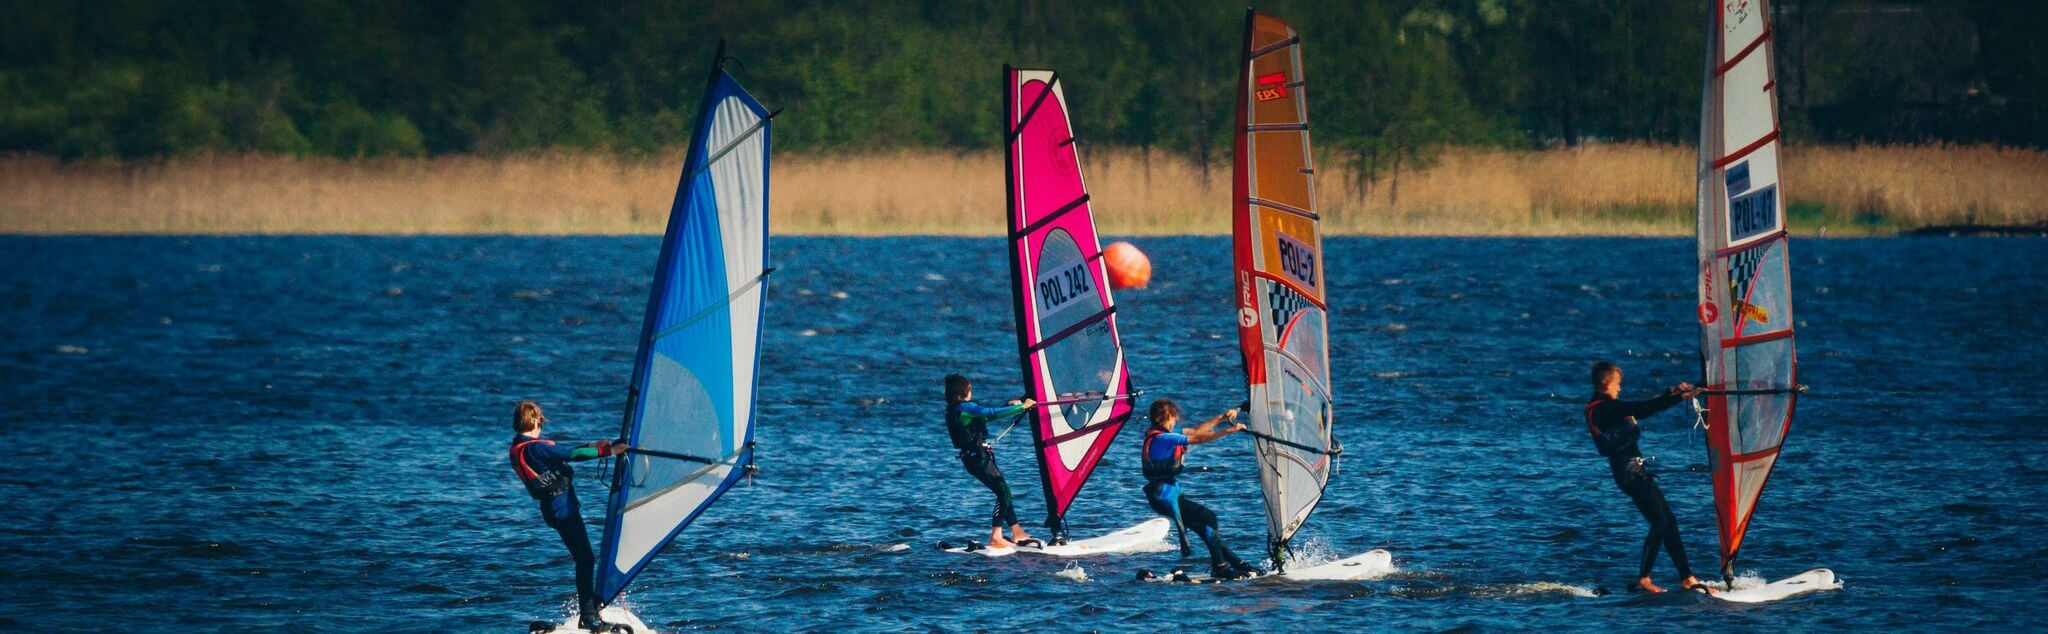 Windsurfing in Somerset